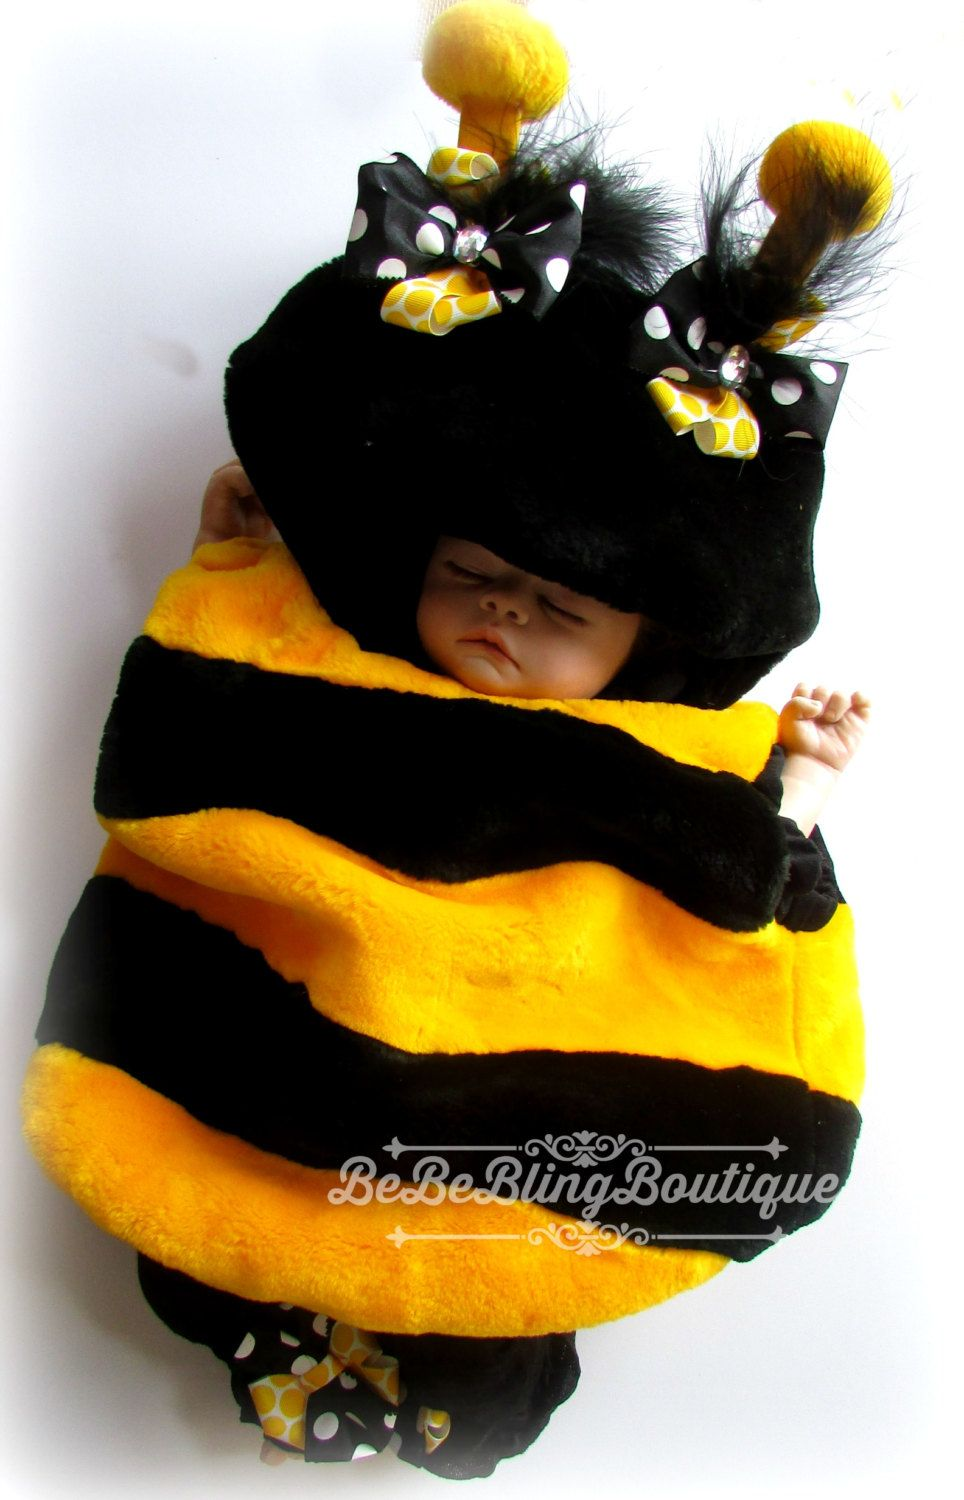 Baby Girl Halloween Costume Bumble Bee Costume 12 month Girl Costume 24 monthu2026  sc 1 st  Pinterest & Baby Girl Bee Halloween Costume READY to SHIP Bee Costume 12 month ...